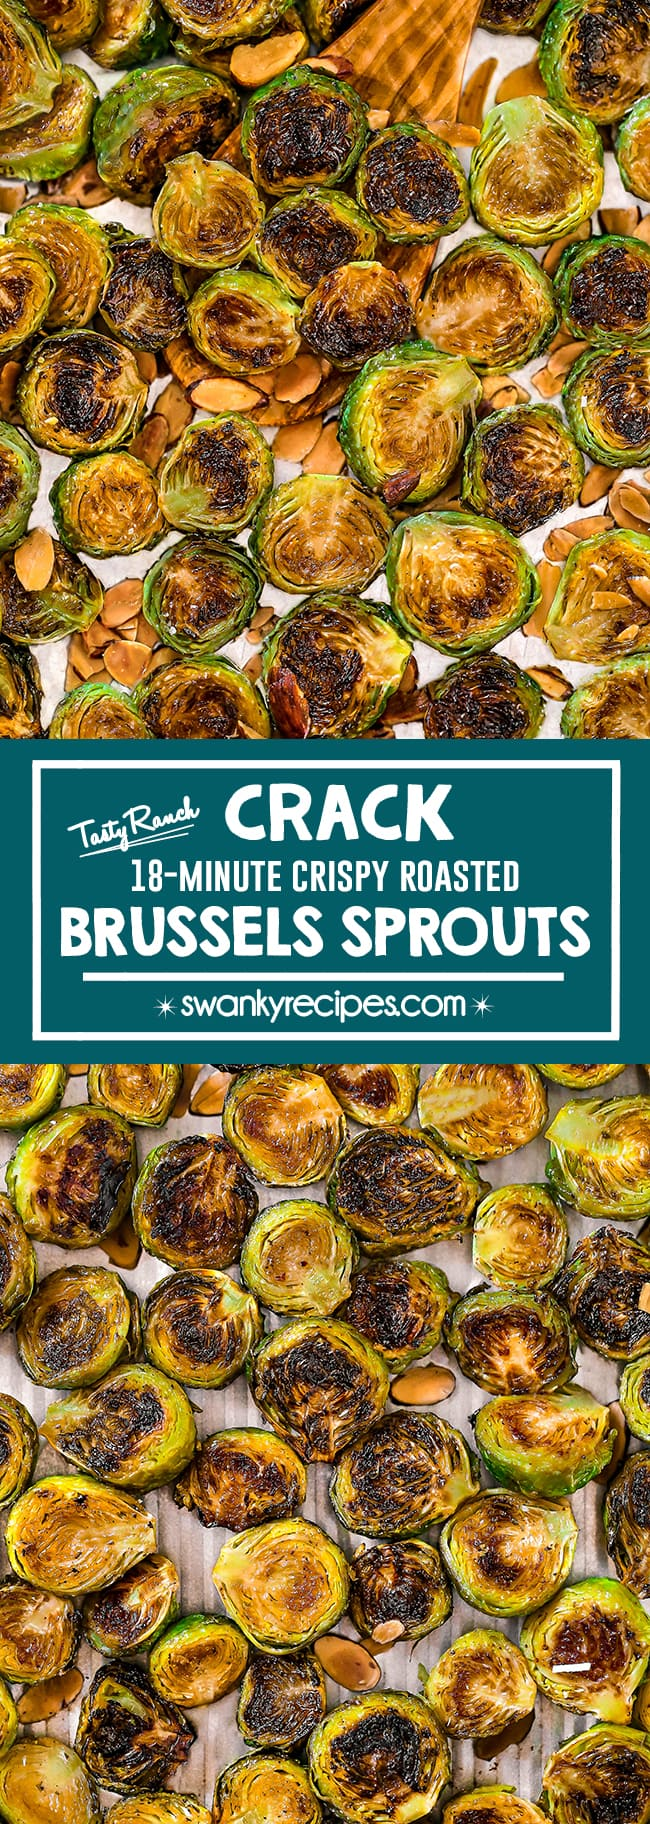 Easy Crispy Roasted Brussels Sprouts - Quick, healthy brussels sprouts with outrageous flavor! Oven-roasted sprouts tossed in delicious ranch seasoning with parmesan cheese and toasted almonds. Healthy side dish vegetable to make for holidays.